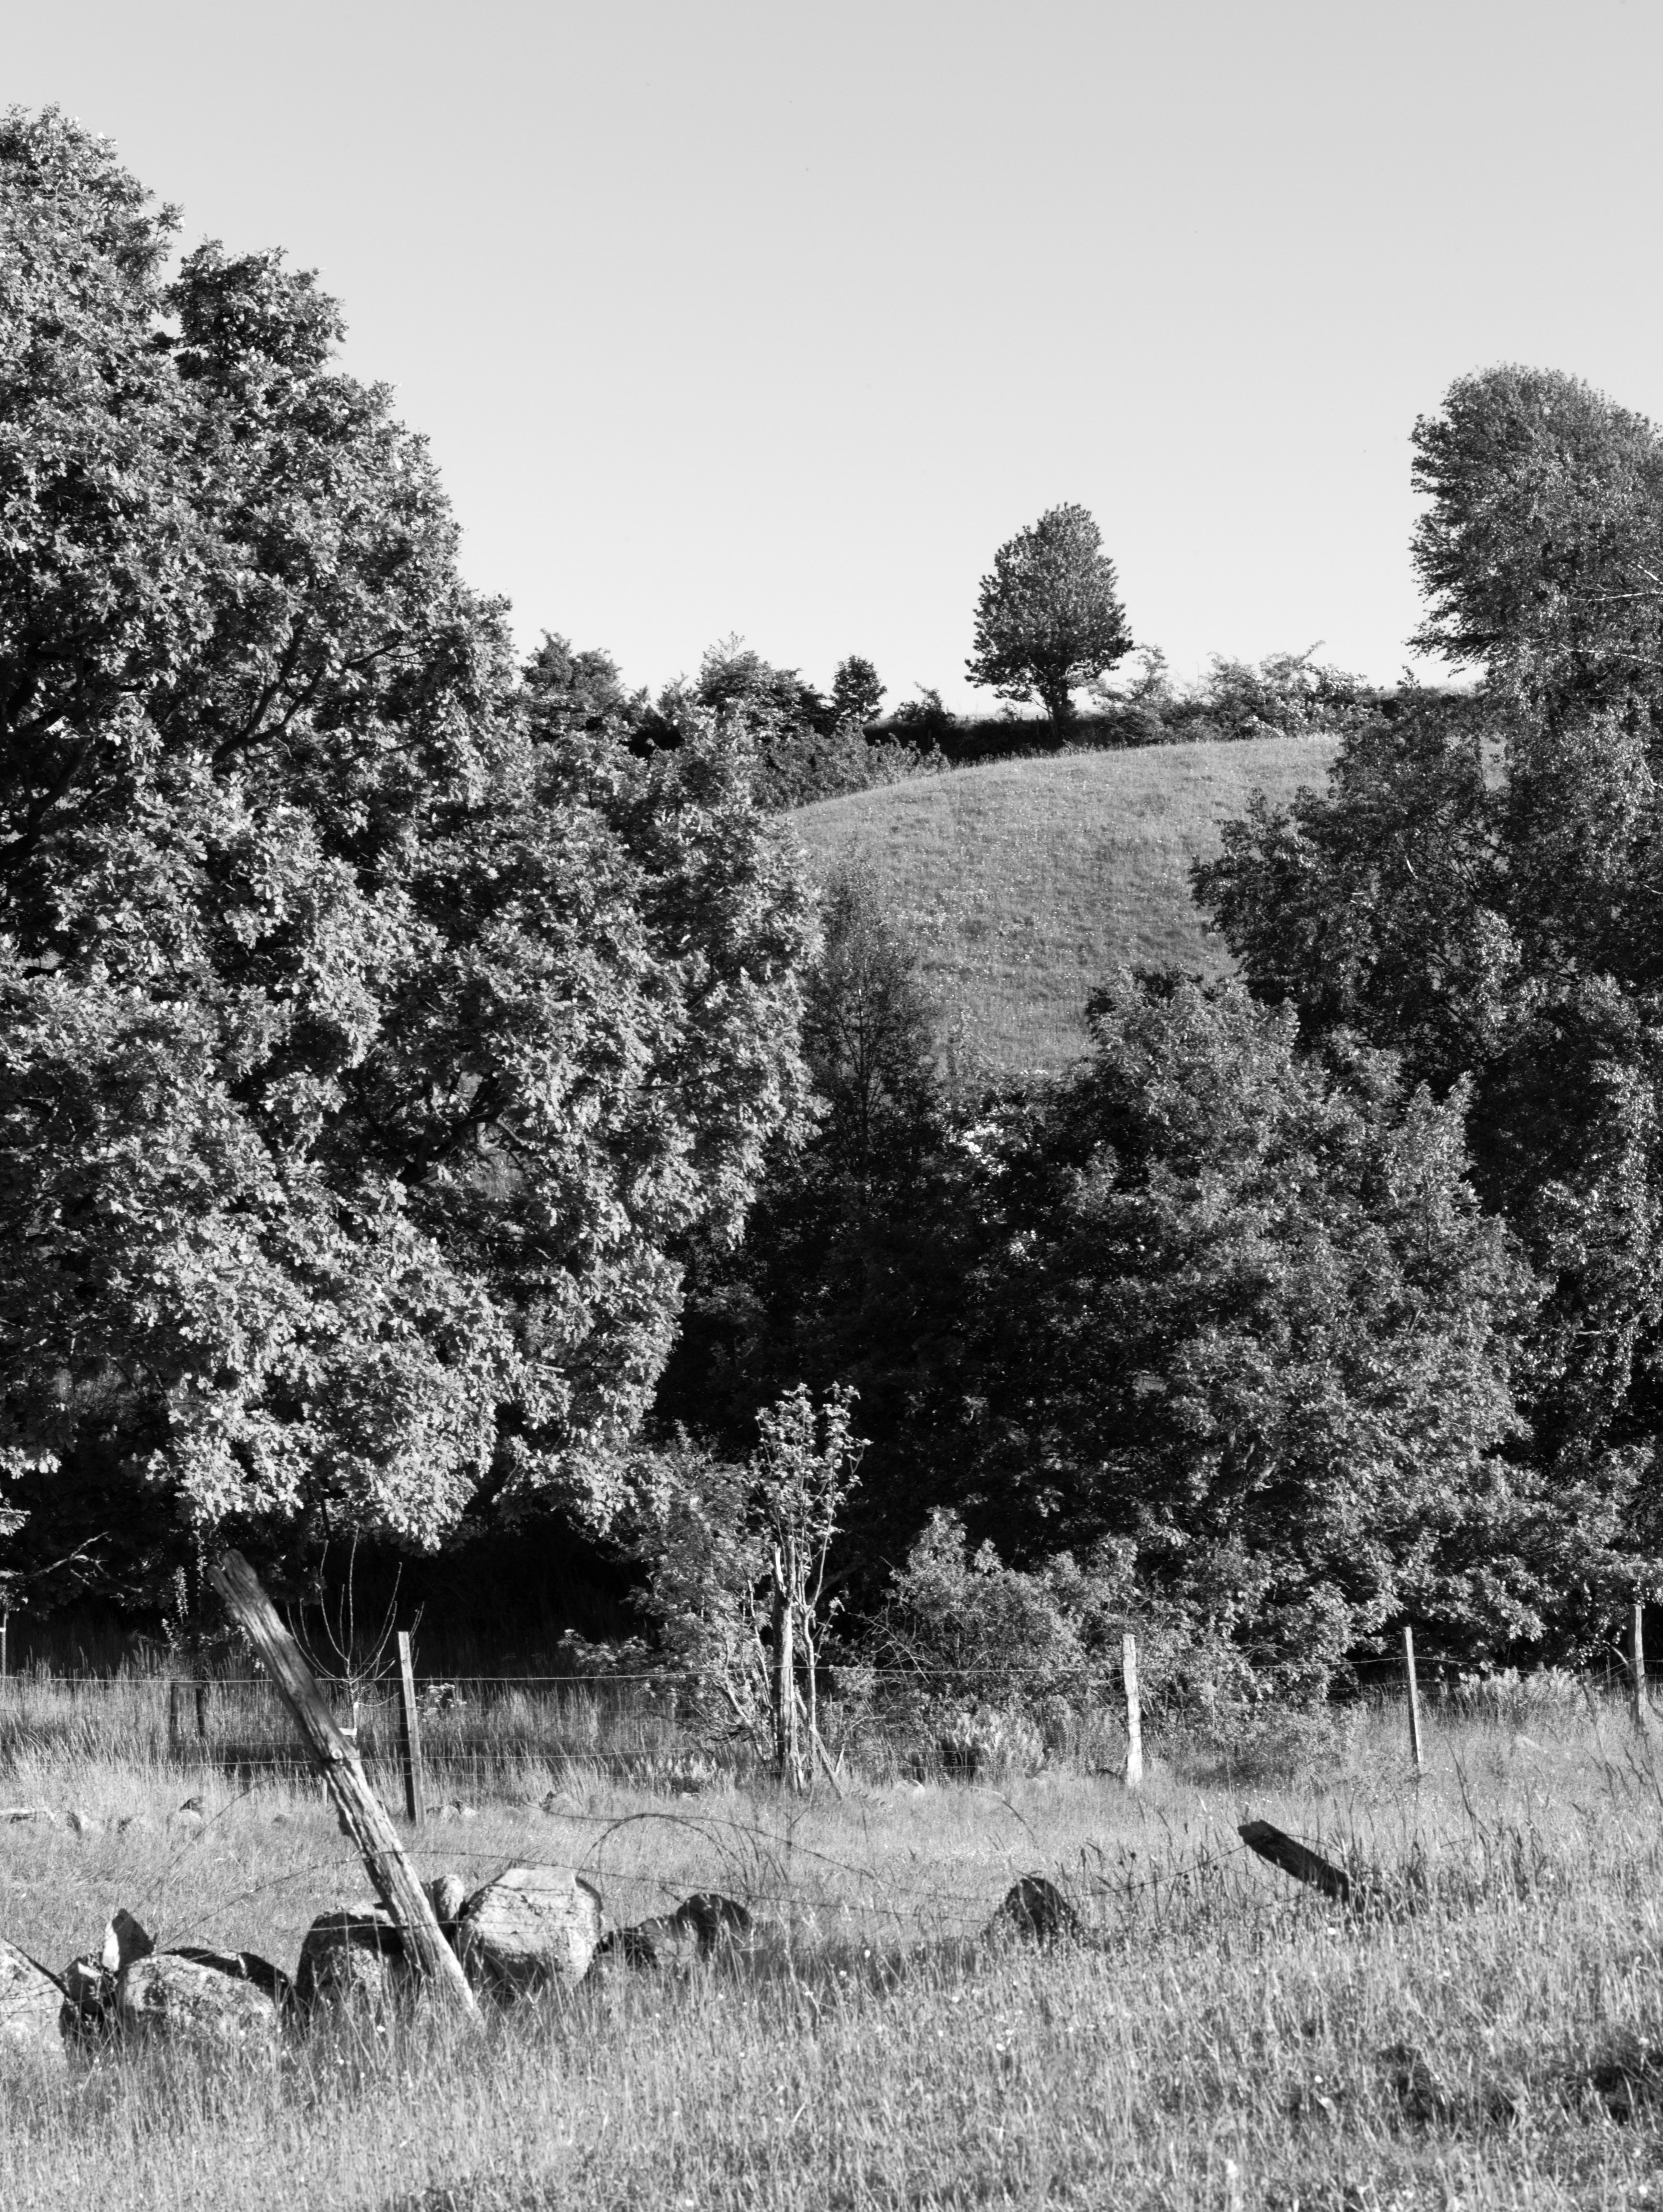 A tree on the hill at Brösarps backar (Brösarp, Sweden) with Leica M Monochrom (Leica Macro-Elmar-M 90mm f/4) by Magnus L Andersson (photography.anderssoneklund.se) at 2013-06-06 18:01:44